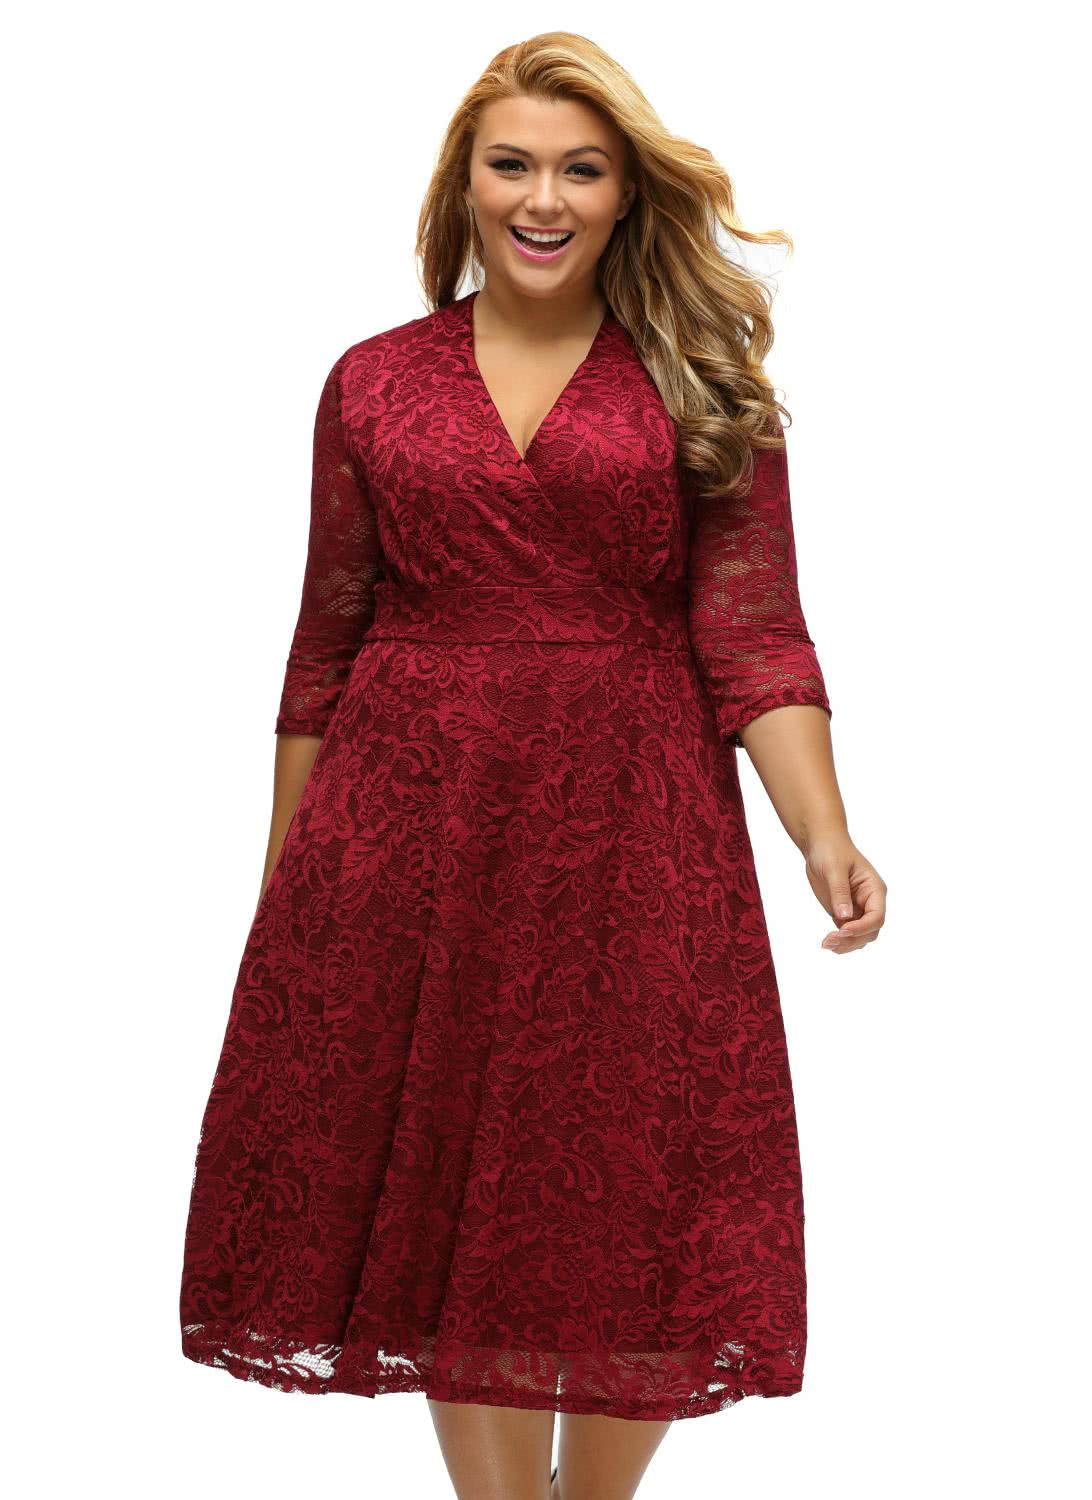 Only US$34.67, #3 xl Plus Size Surplice Lace Long Sleeve Skater ...